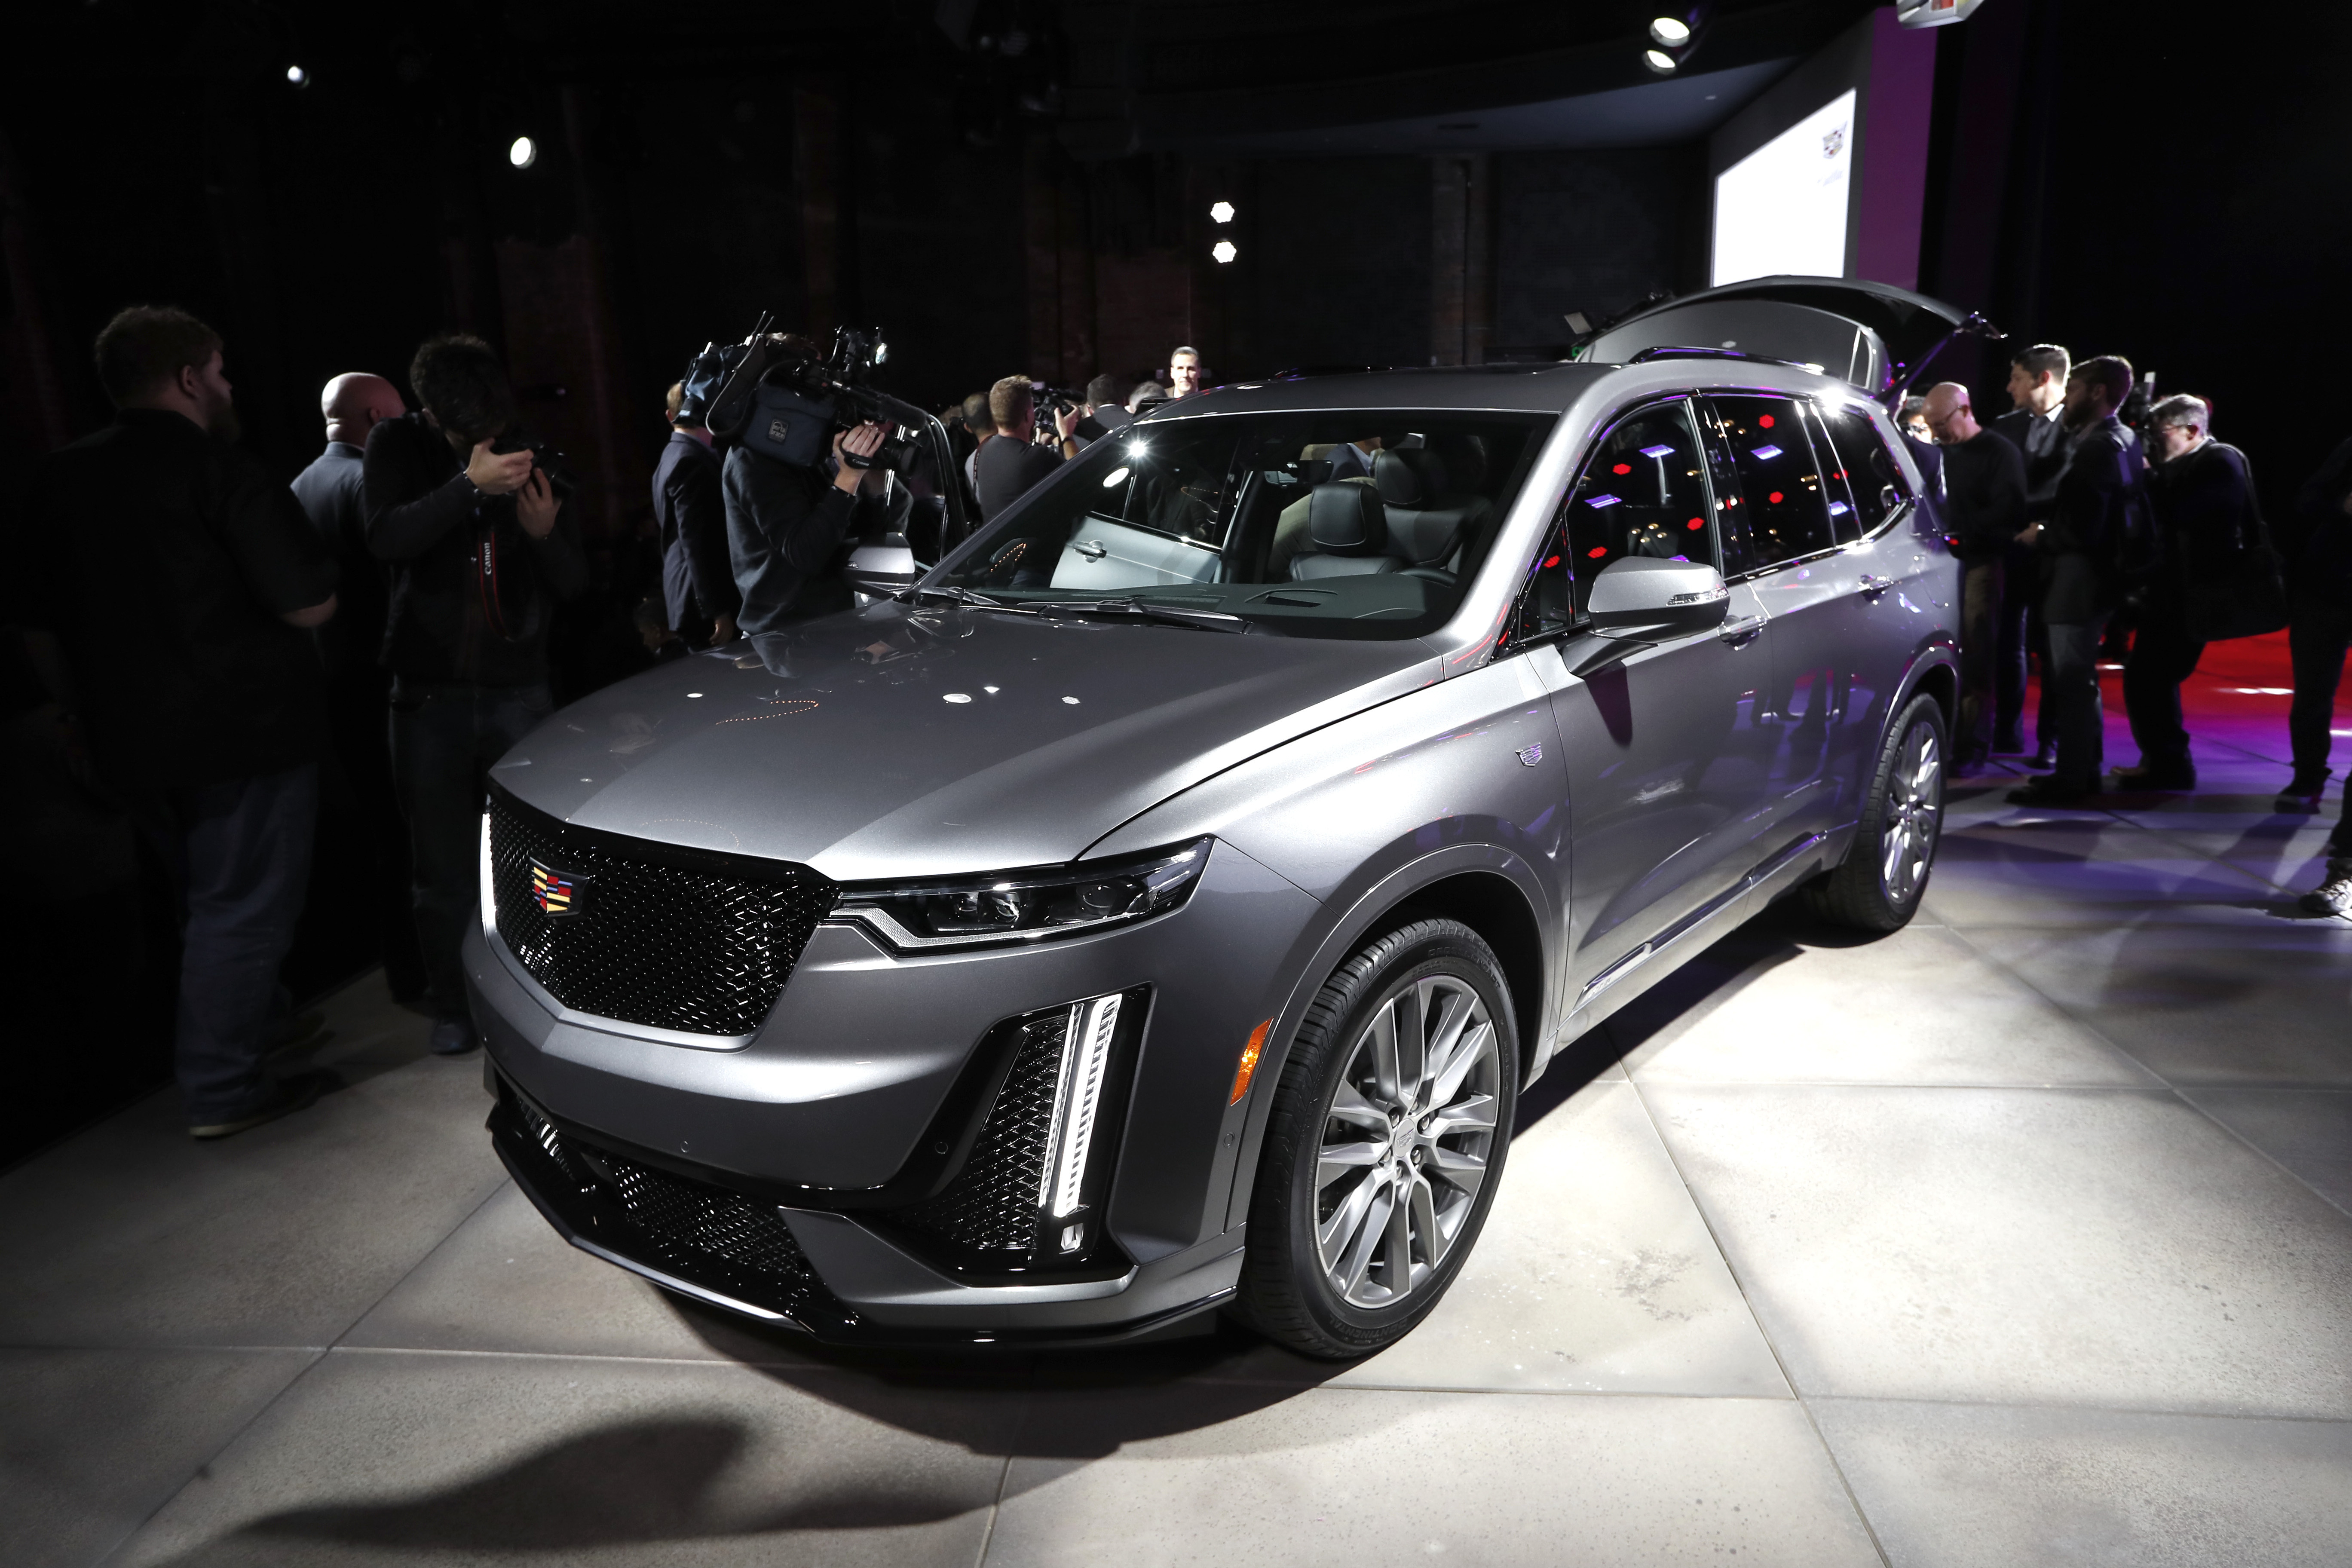 Philly Auto Show 2020.Ford And Cadillac Suvs Toyota Sports Car Star At Auto Show